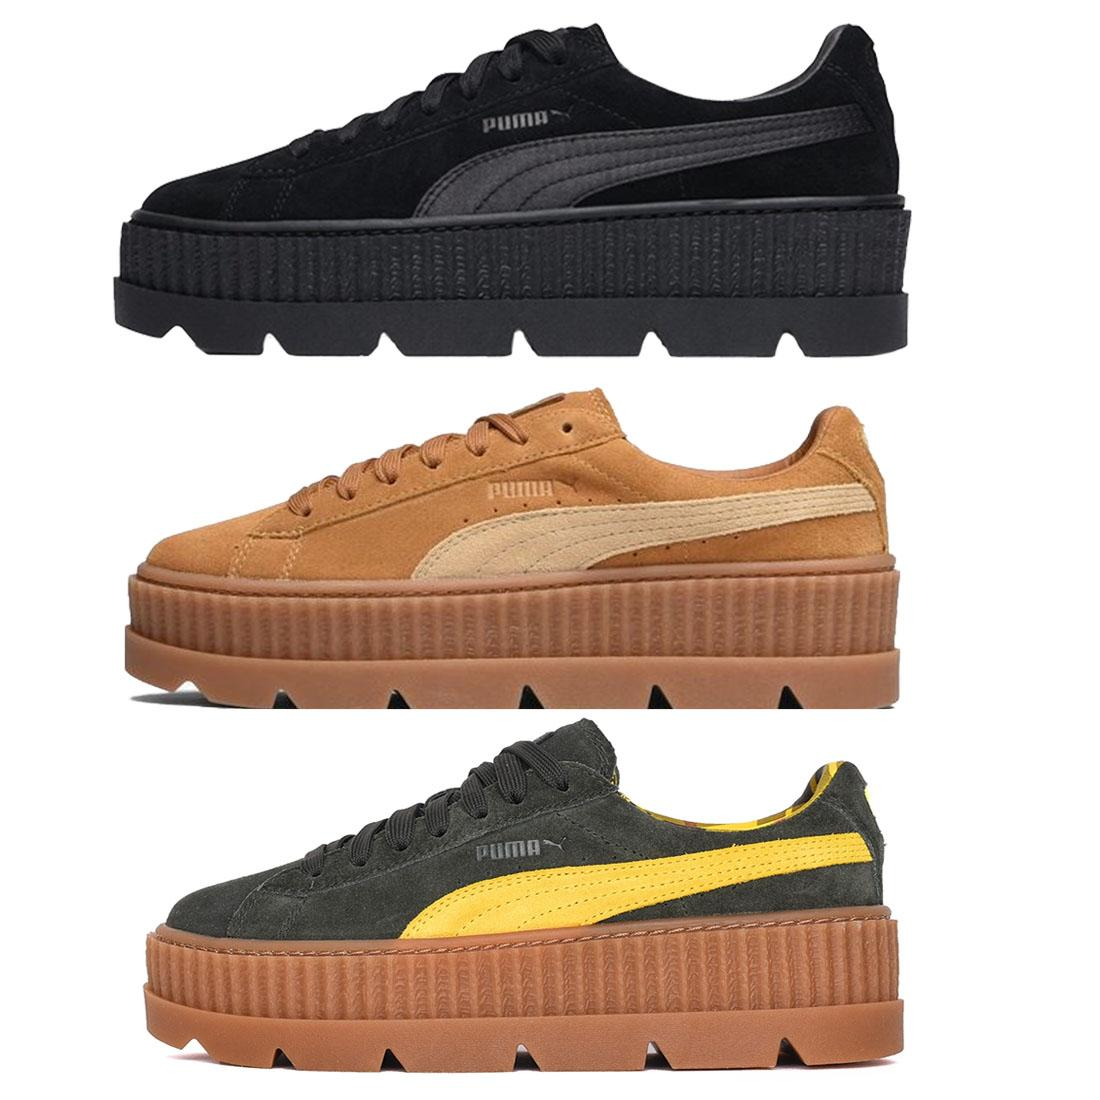 23a61884d386 PUMA Fenty X Rihanna Cleated Creeper Shoes Ladies Black Brown Green Trainers